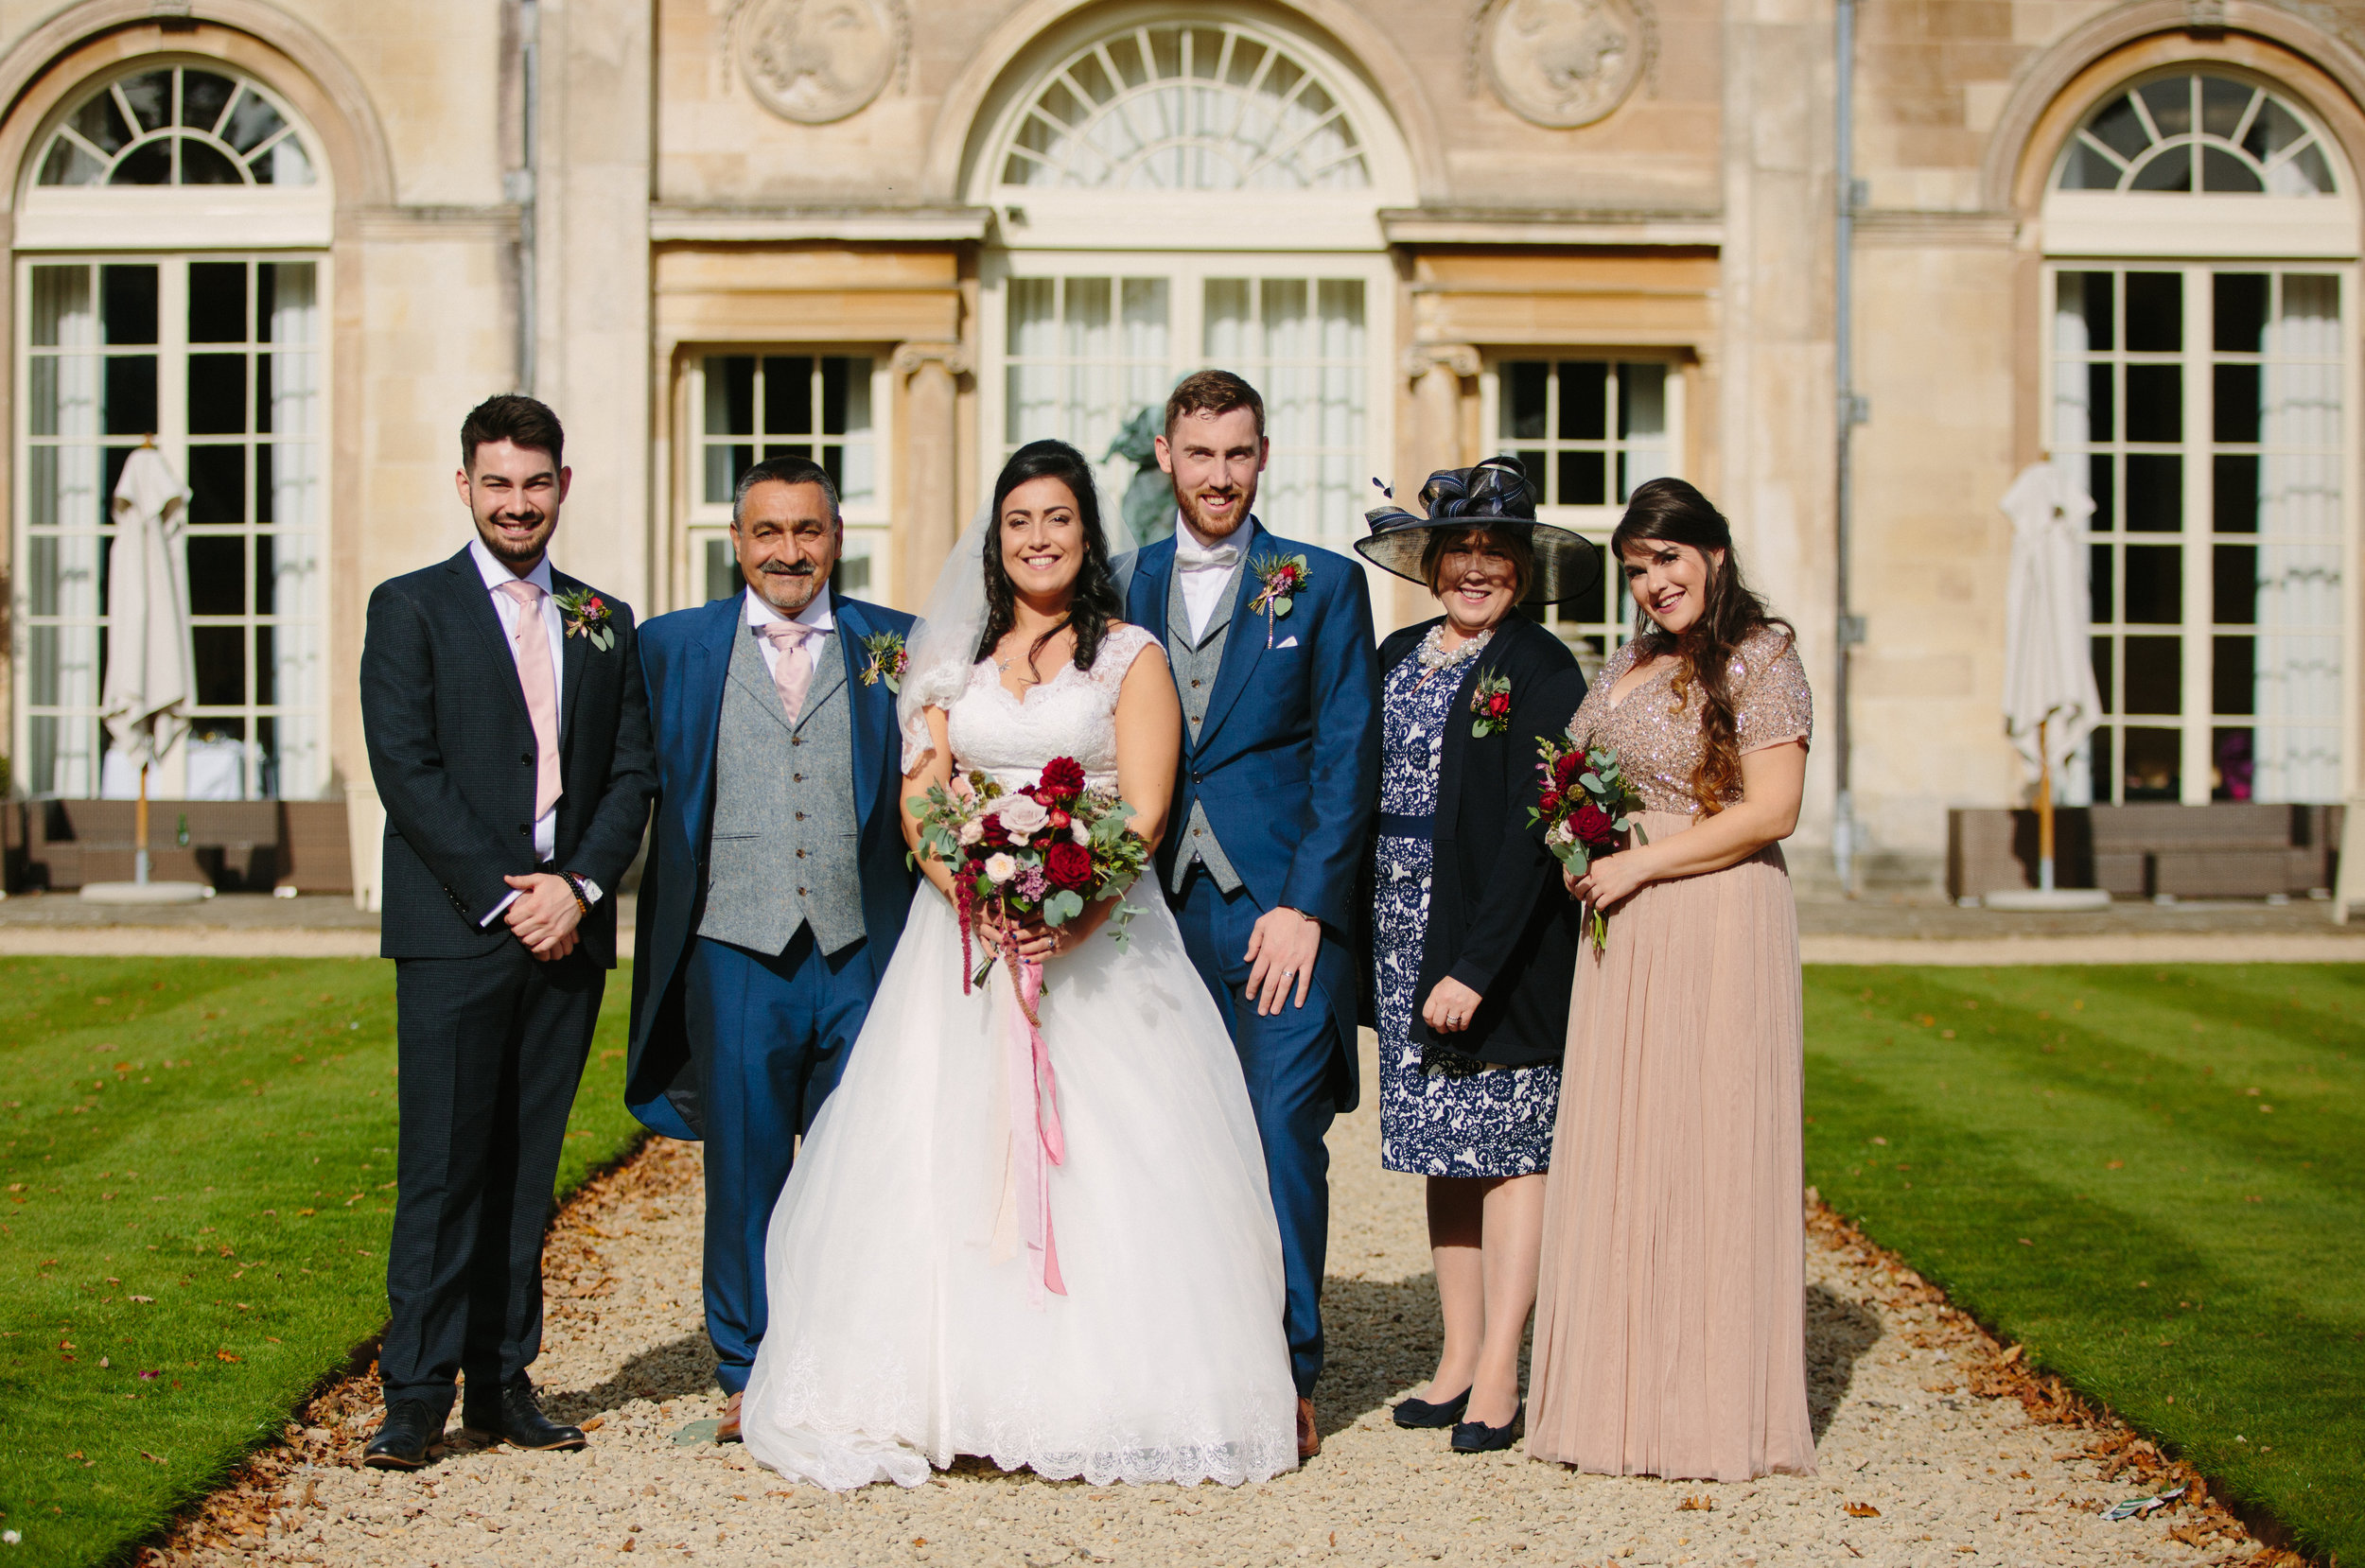 london-bedfordshire-uk-wedding-photography-woburn-sculpture-gallery-group-portrait-43